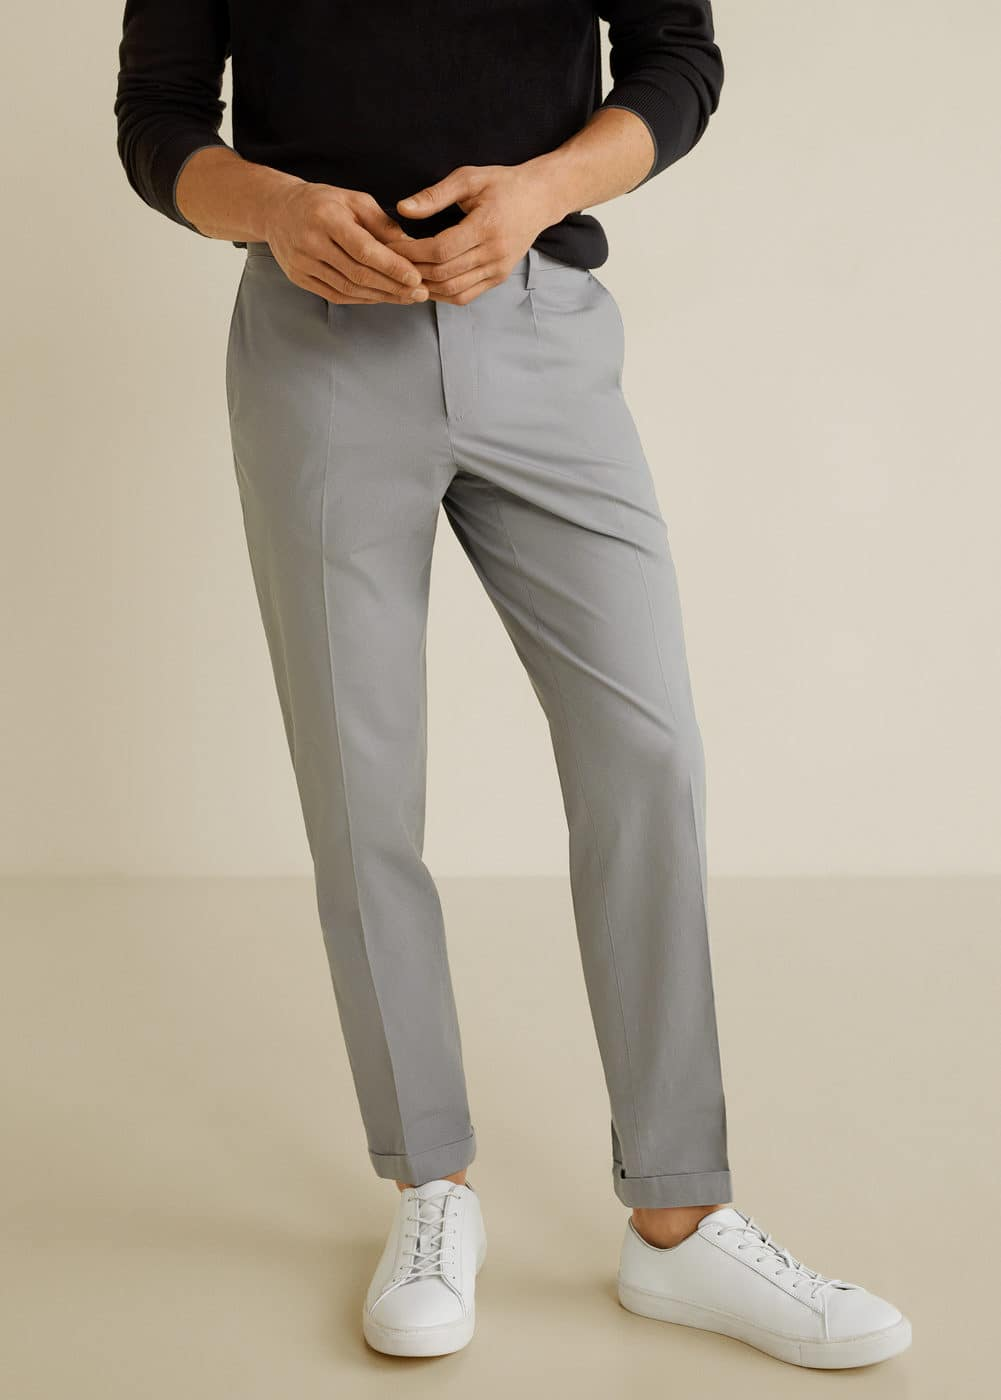 Regular Fit Pleated Trousers by Mango